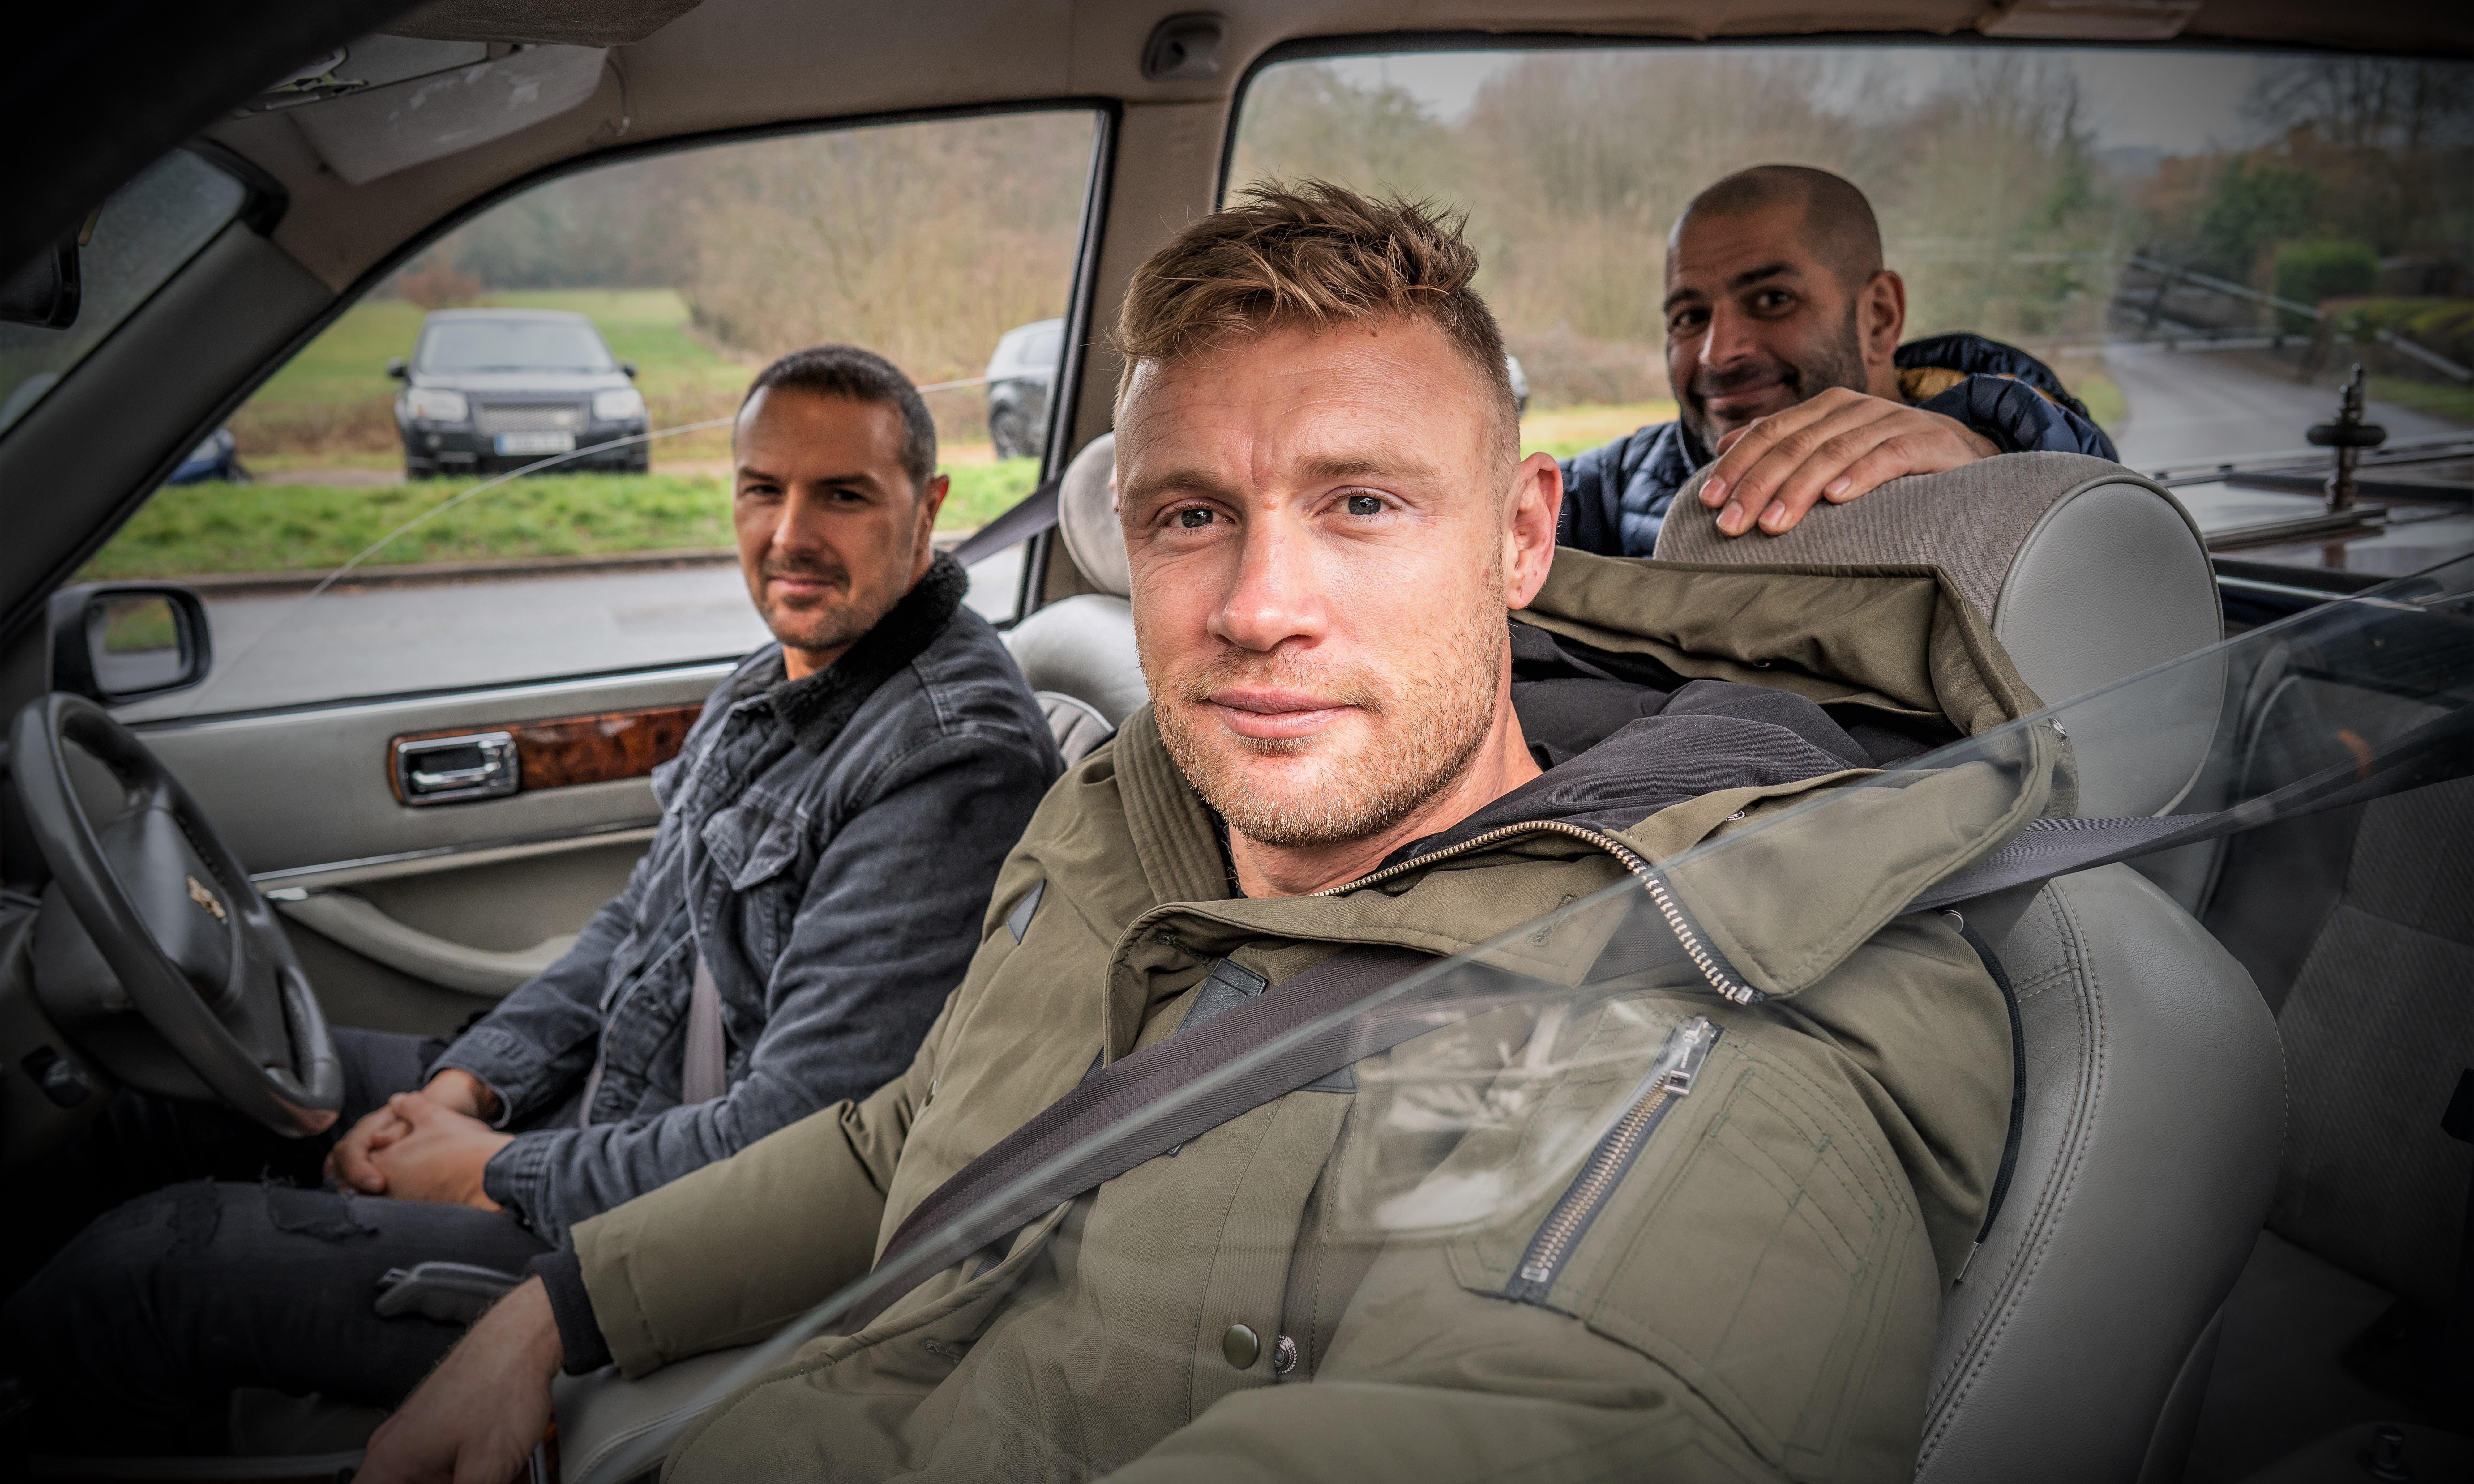 'There's hugs and nice bits': new Top Gear aims for emotional depth